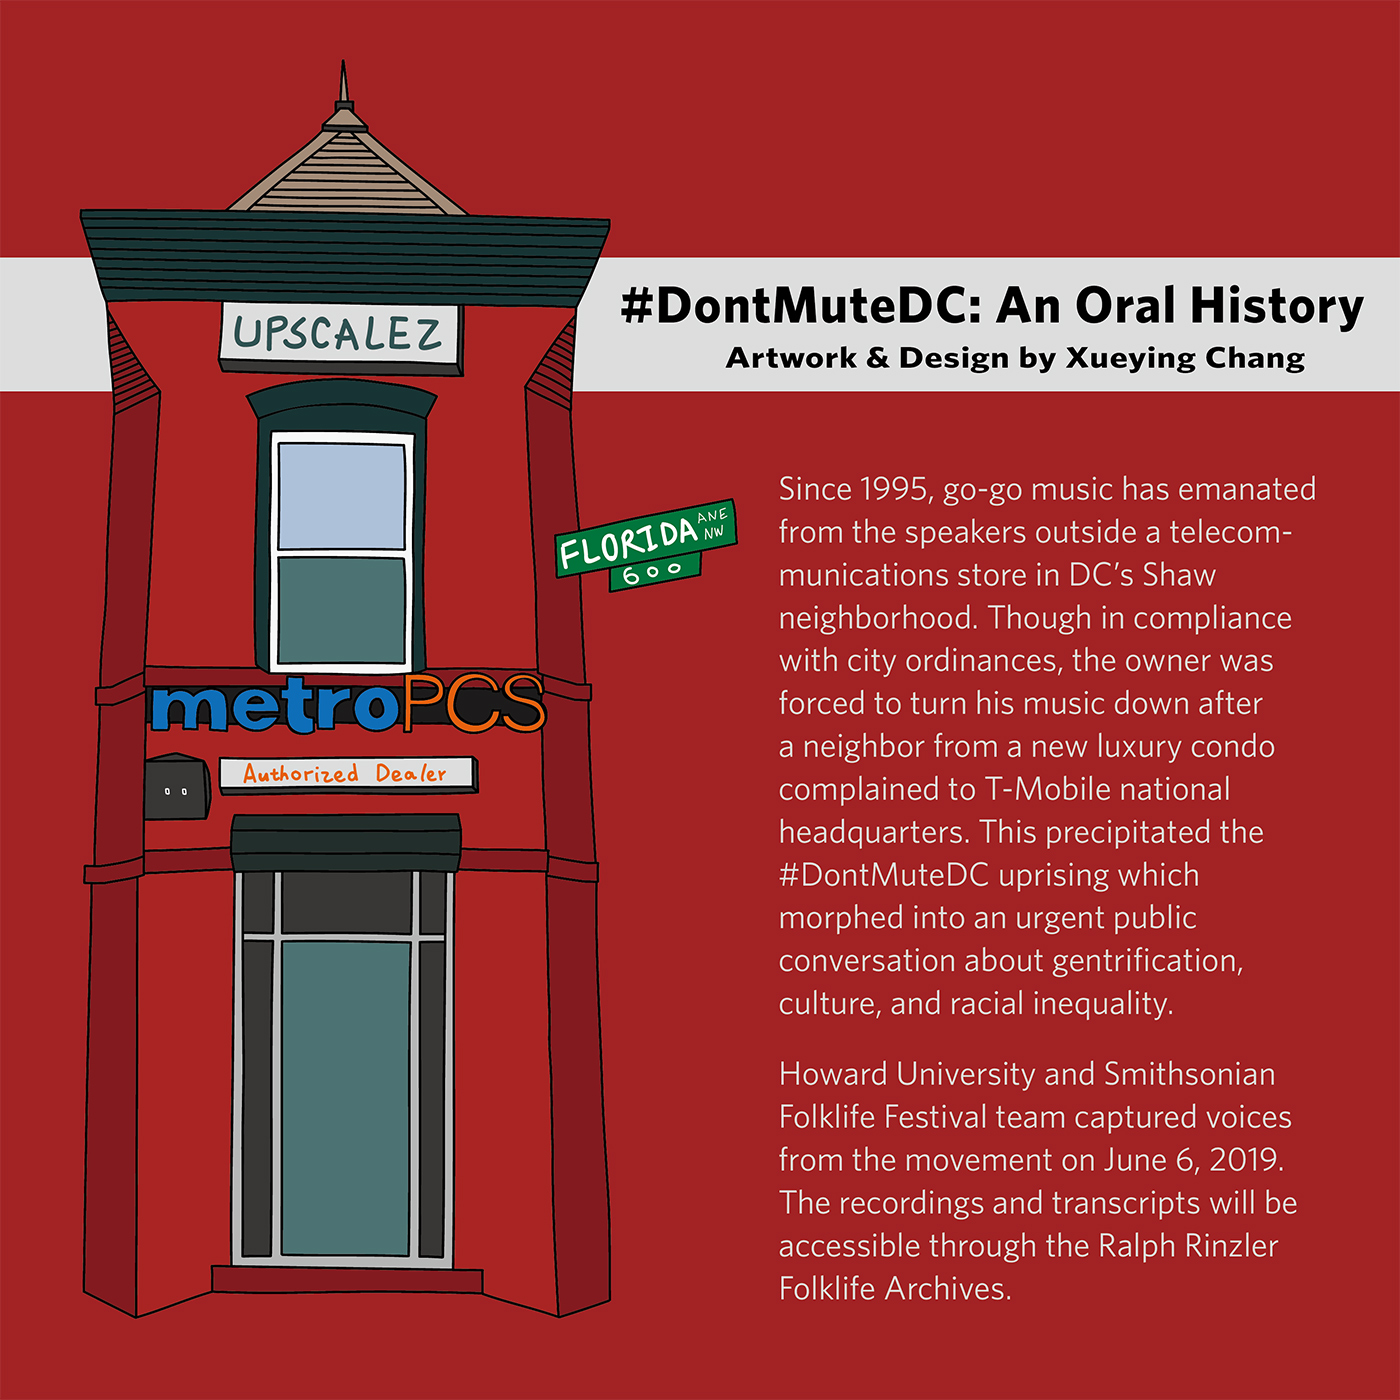 #DontMuteDC: An Oral History